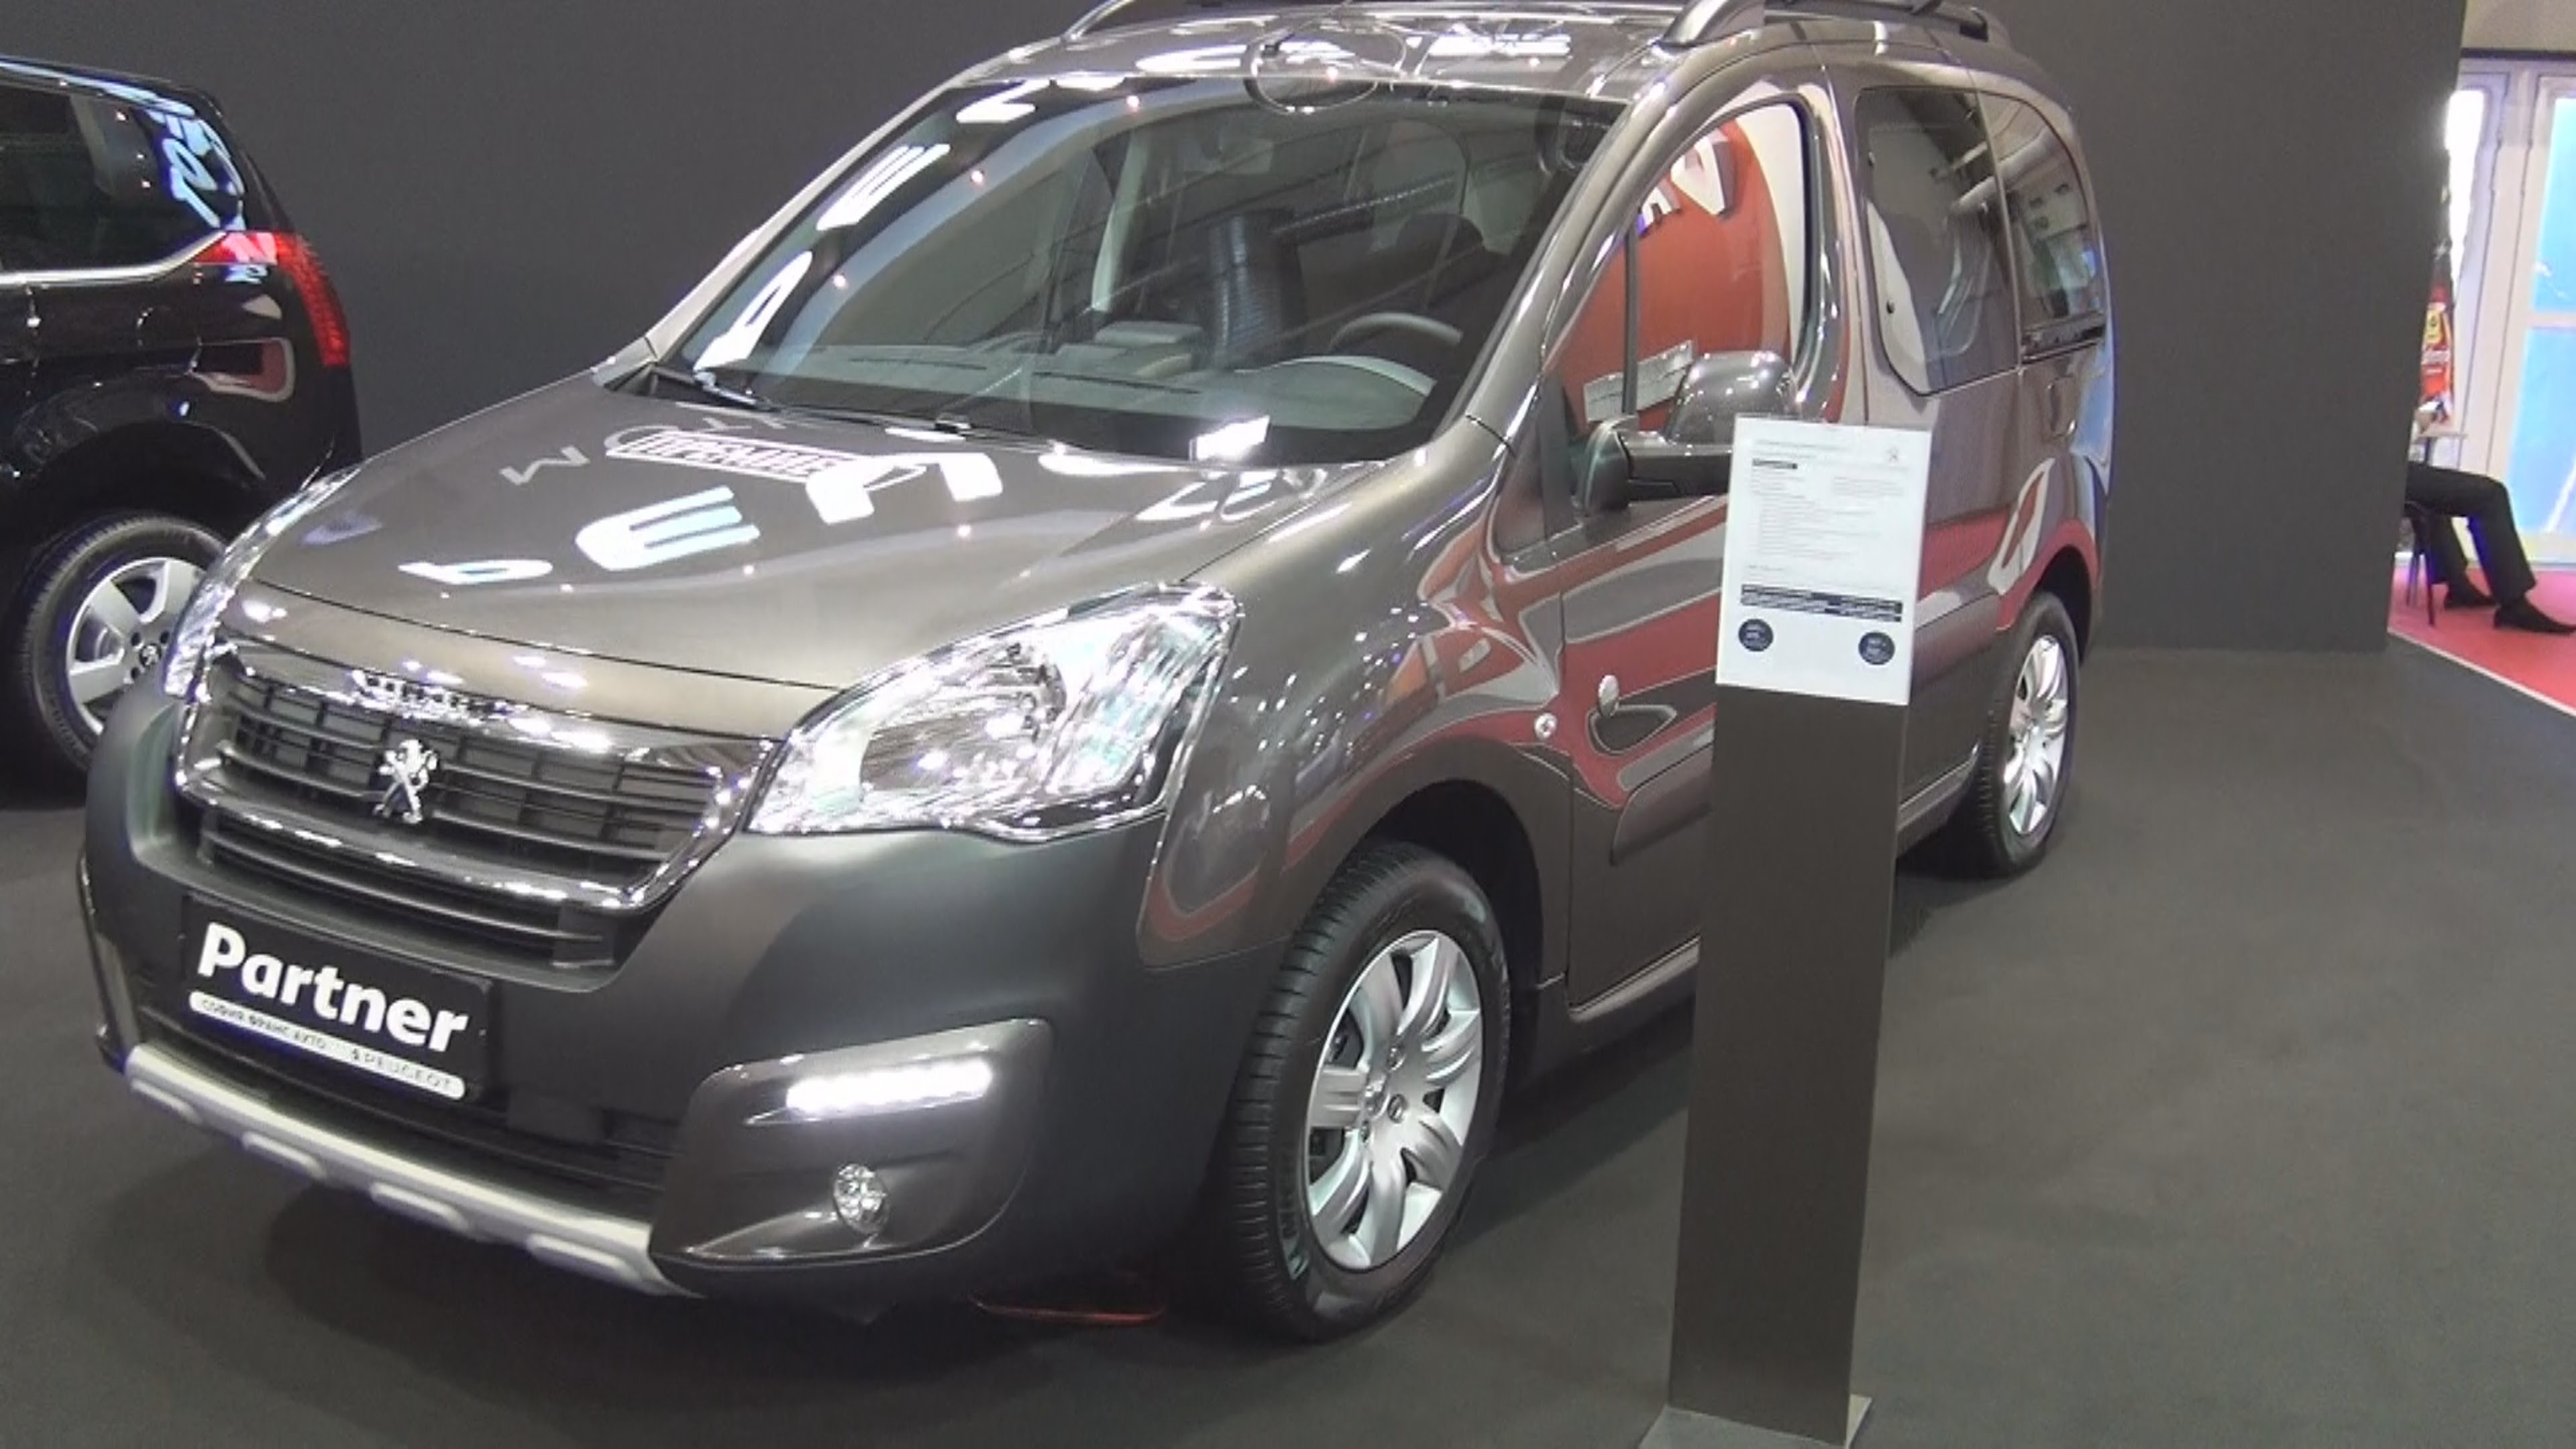 Peugeot Partner II Restyling 2 2015 - now Compact MPV #5